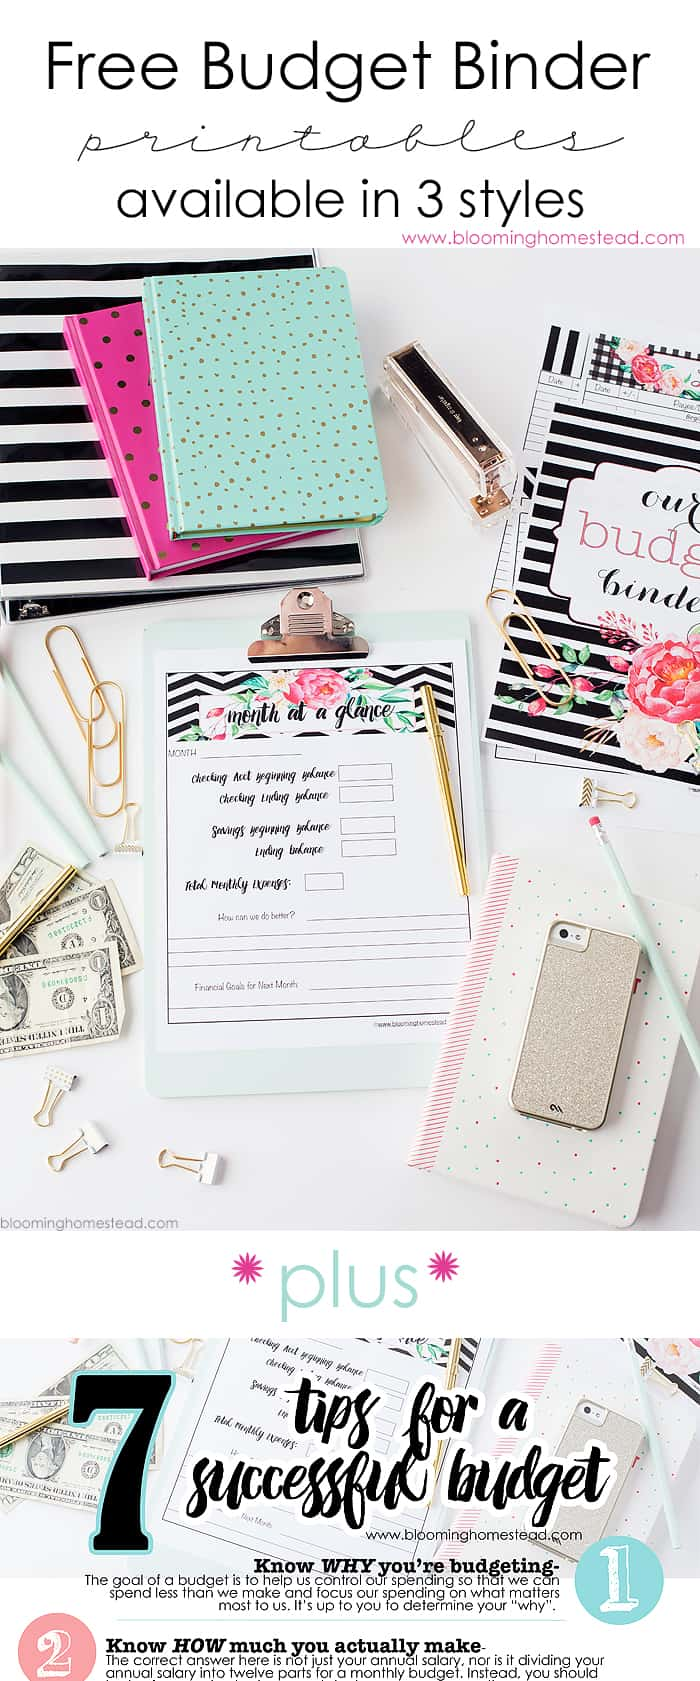 Free Budget Binder Printables plus 7 tips for a successful budget available at Blooming Homestaed